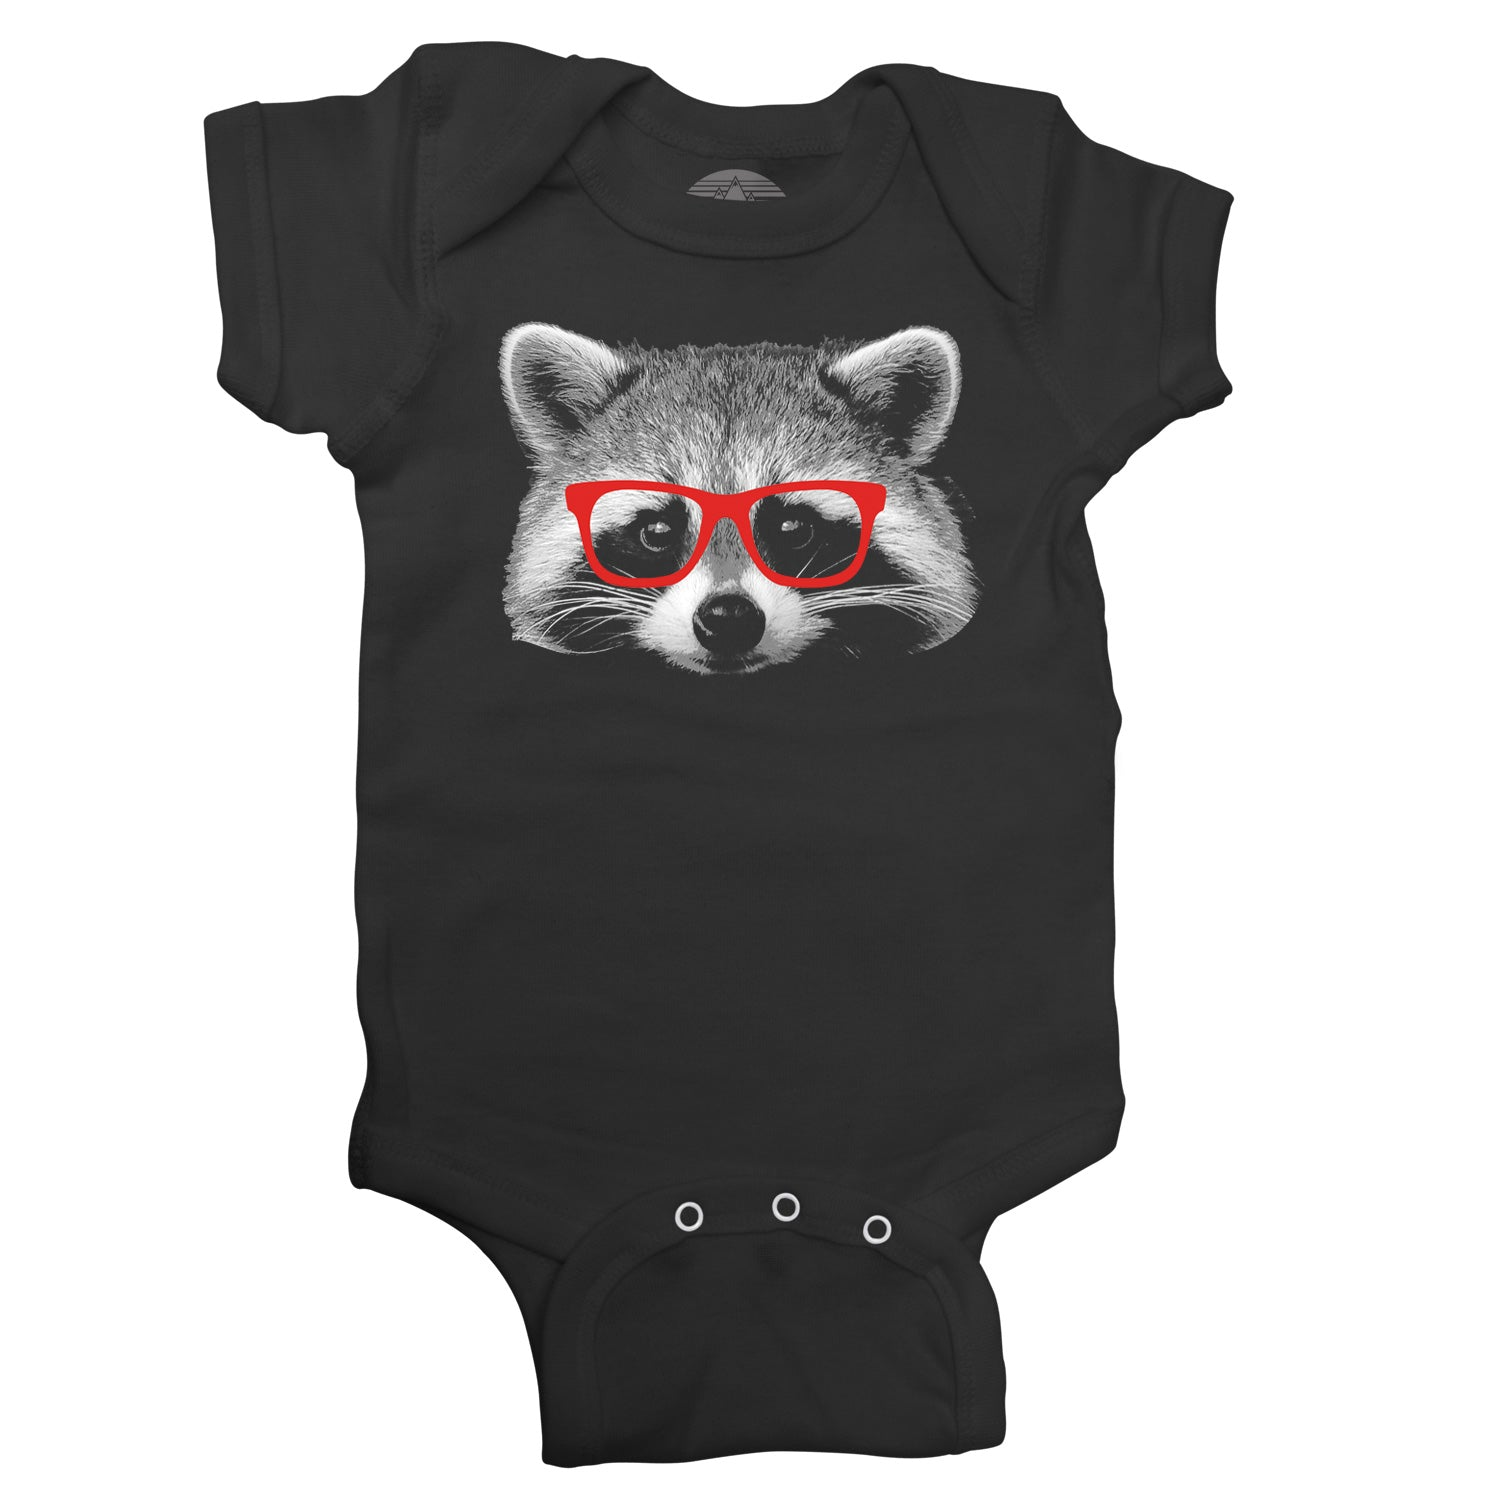 Glasses on a Raccoon Infant Bodysuit - Unisex Fit